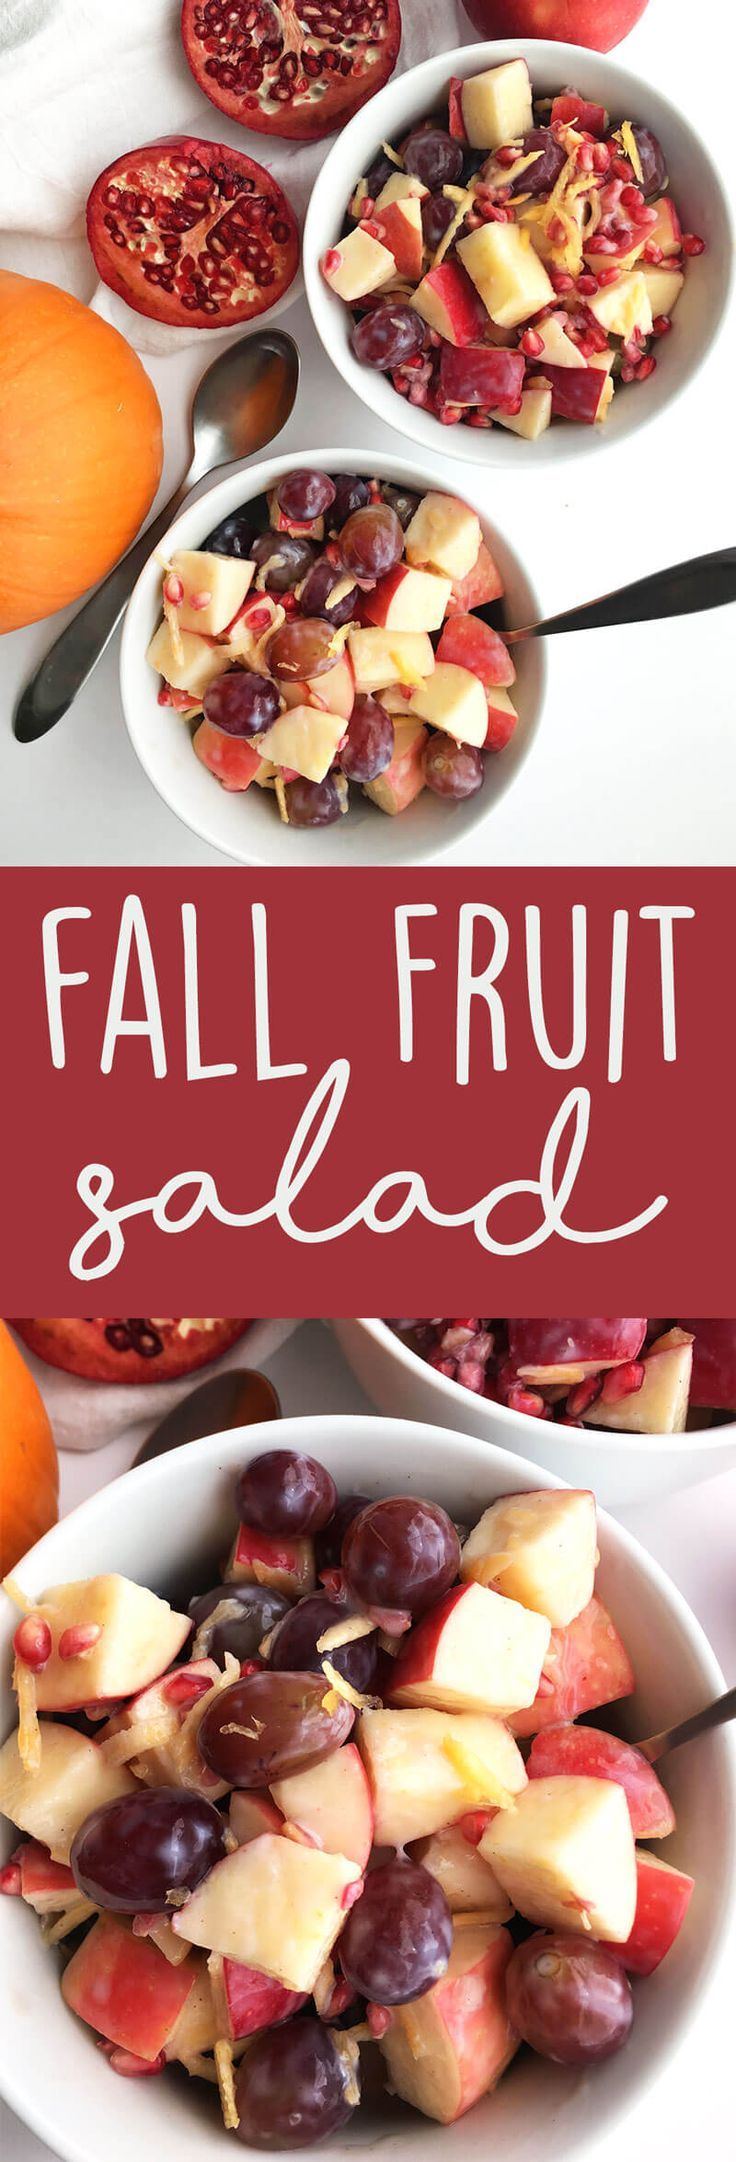 Healthy Fall Fruit Salad: Apples, pomegranate arils, grapes, and shredded pumpkin come together with a delicious creamy dressing to make a fall-inspired, healthy vegan salad. | thecrunchychronicles.com